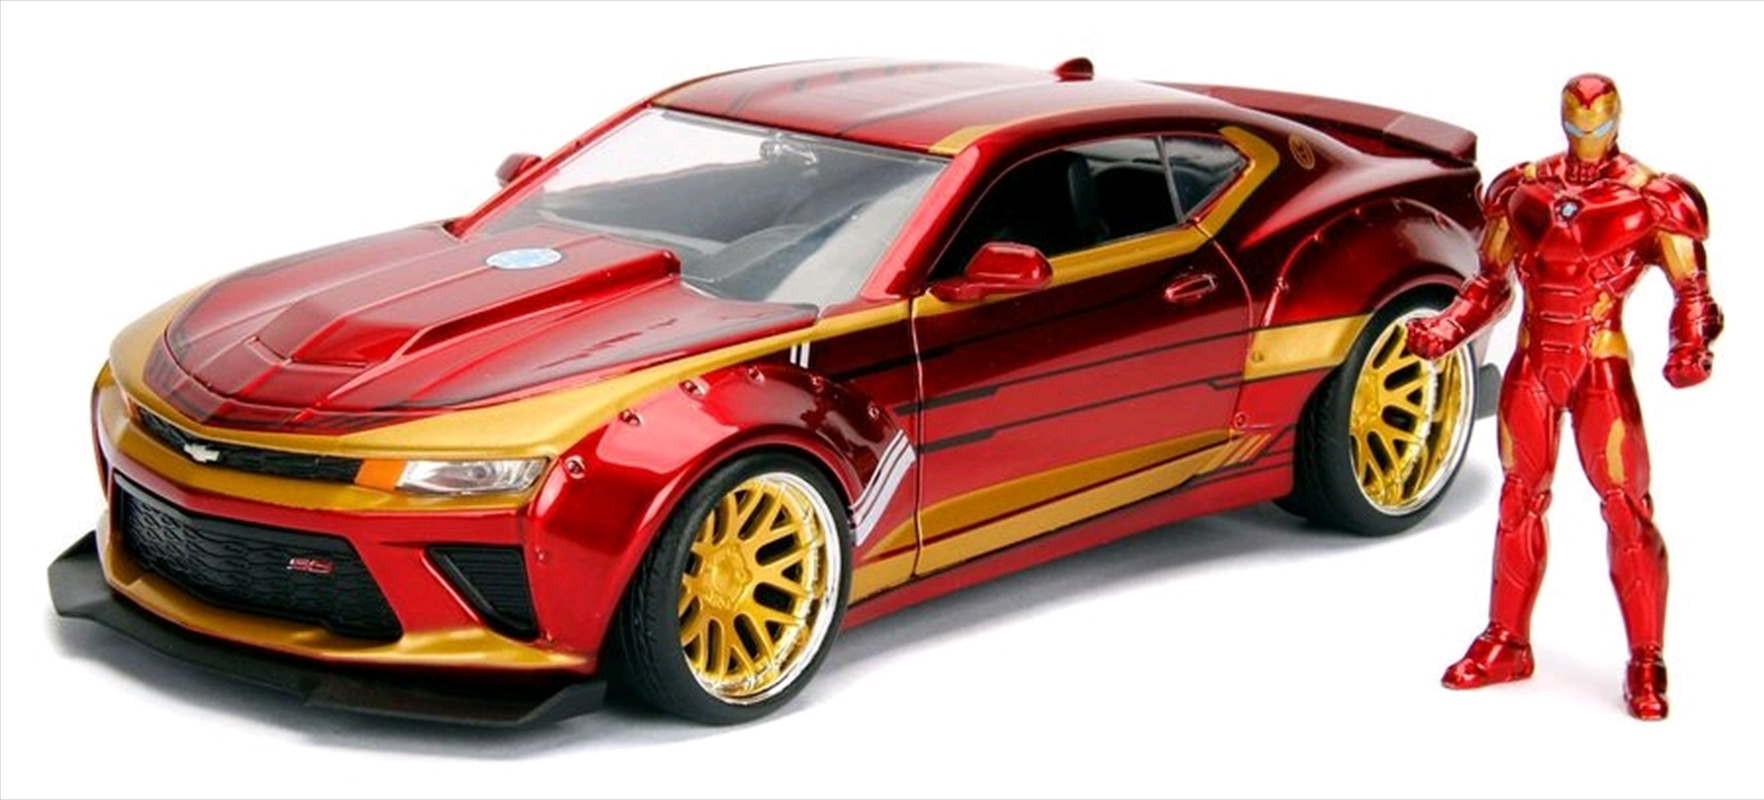 Iron Man - 2016 Chevy Camero SS Hollywood Rides 1:24 Scale Diecast Vehicle   Merchandise